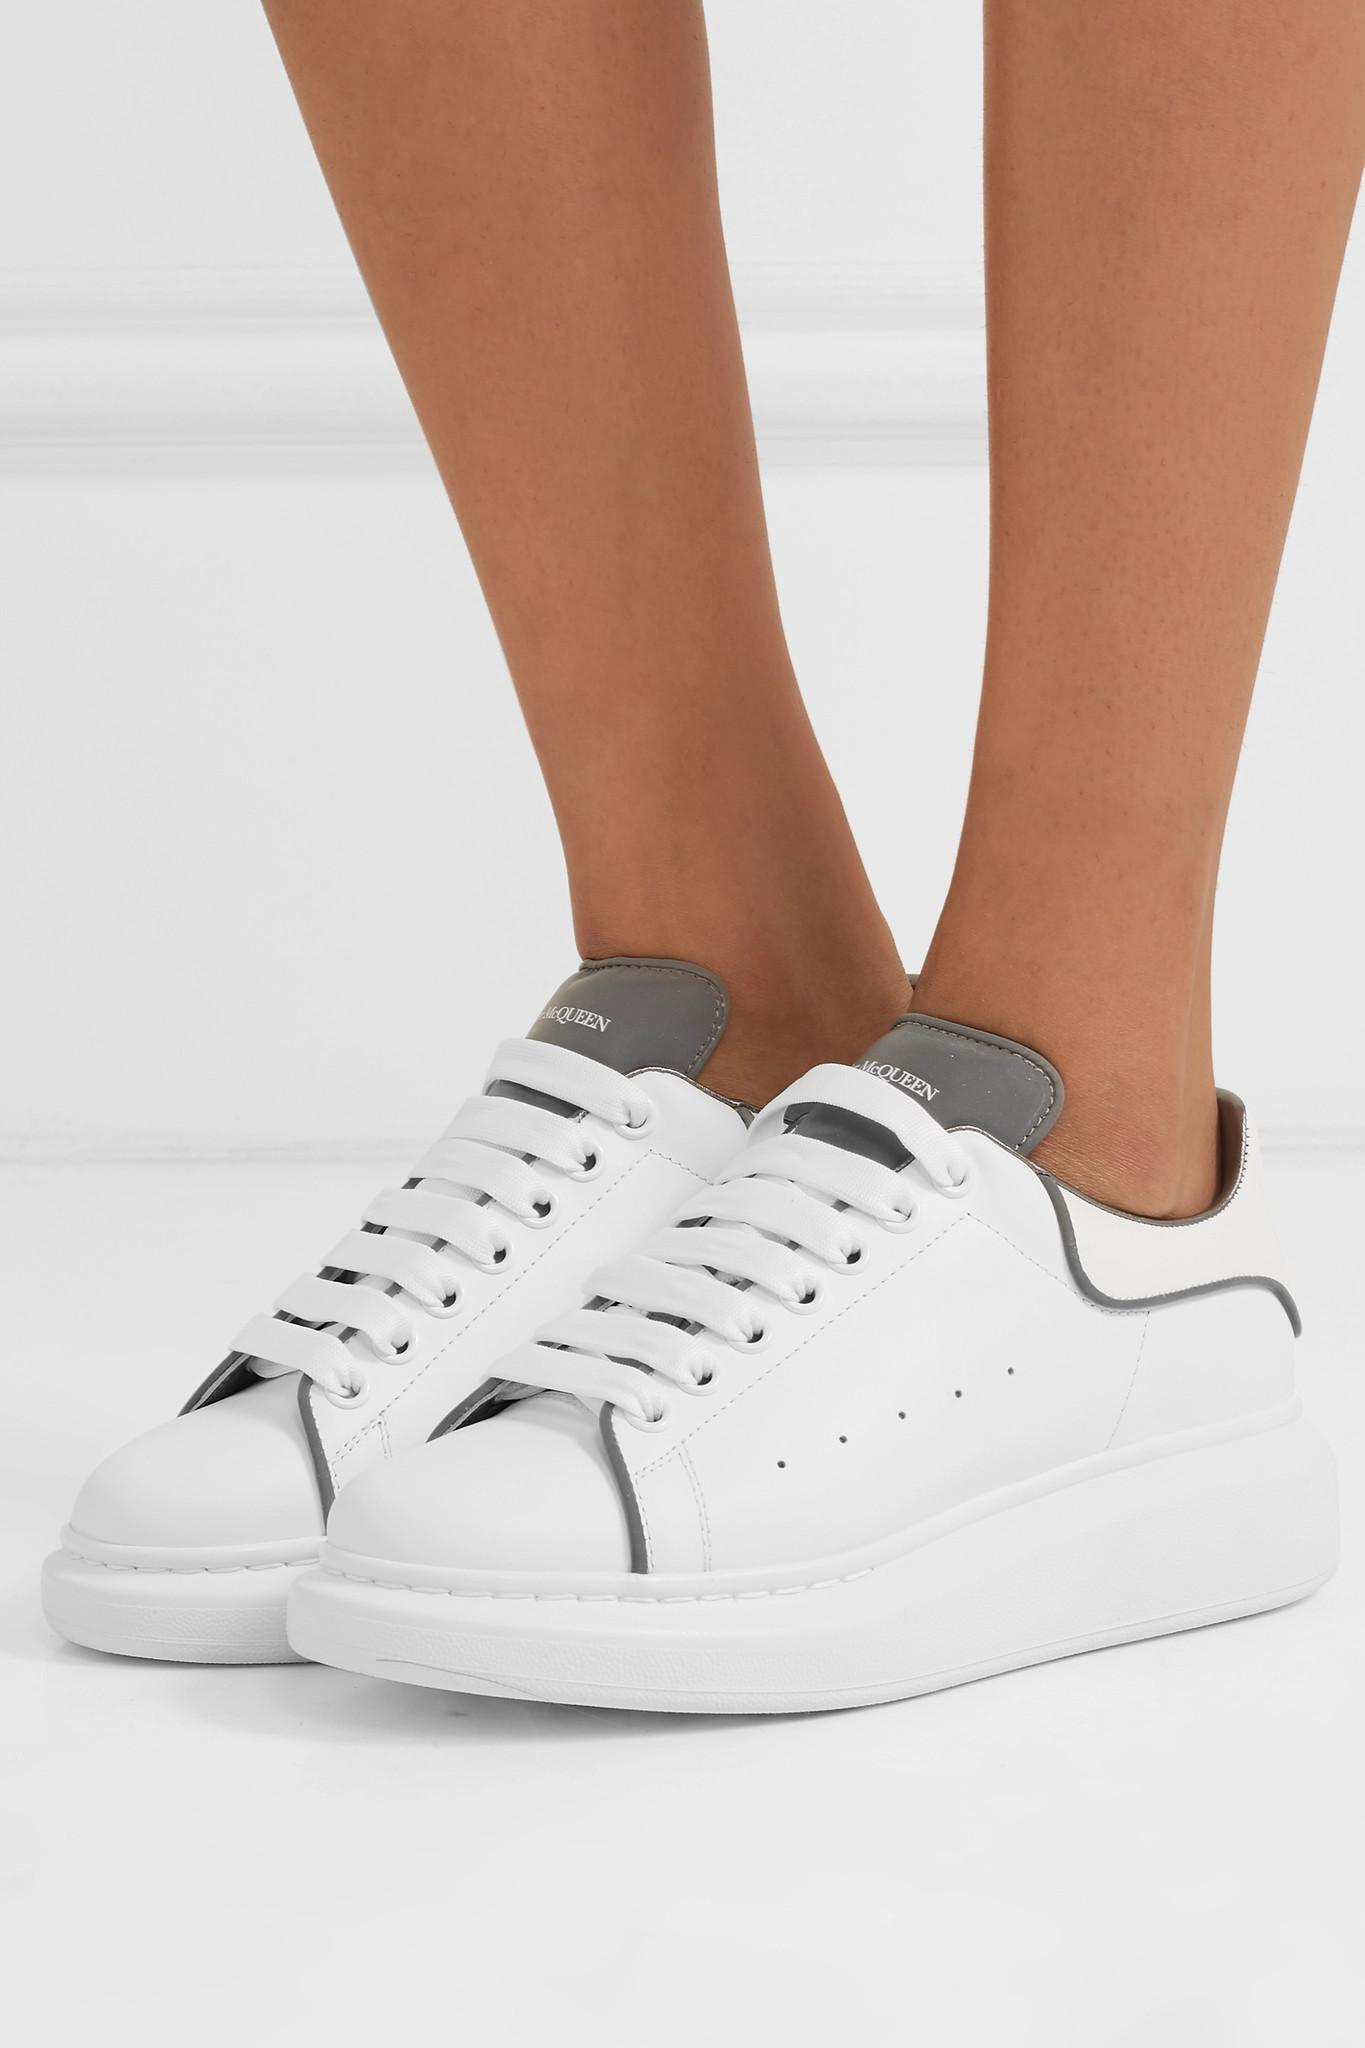 724aa4060861e Alexander McQueen - White Reflective-trimmed Leather Exaggerated-sole  Sneakers - Lyst. View fullscreen